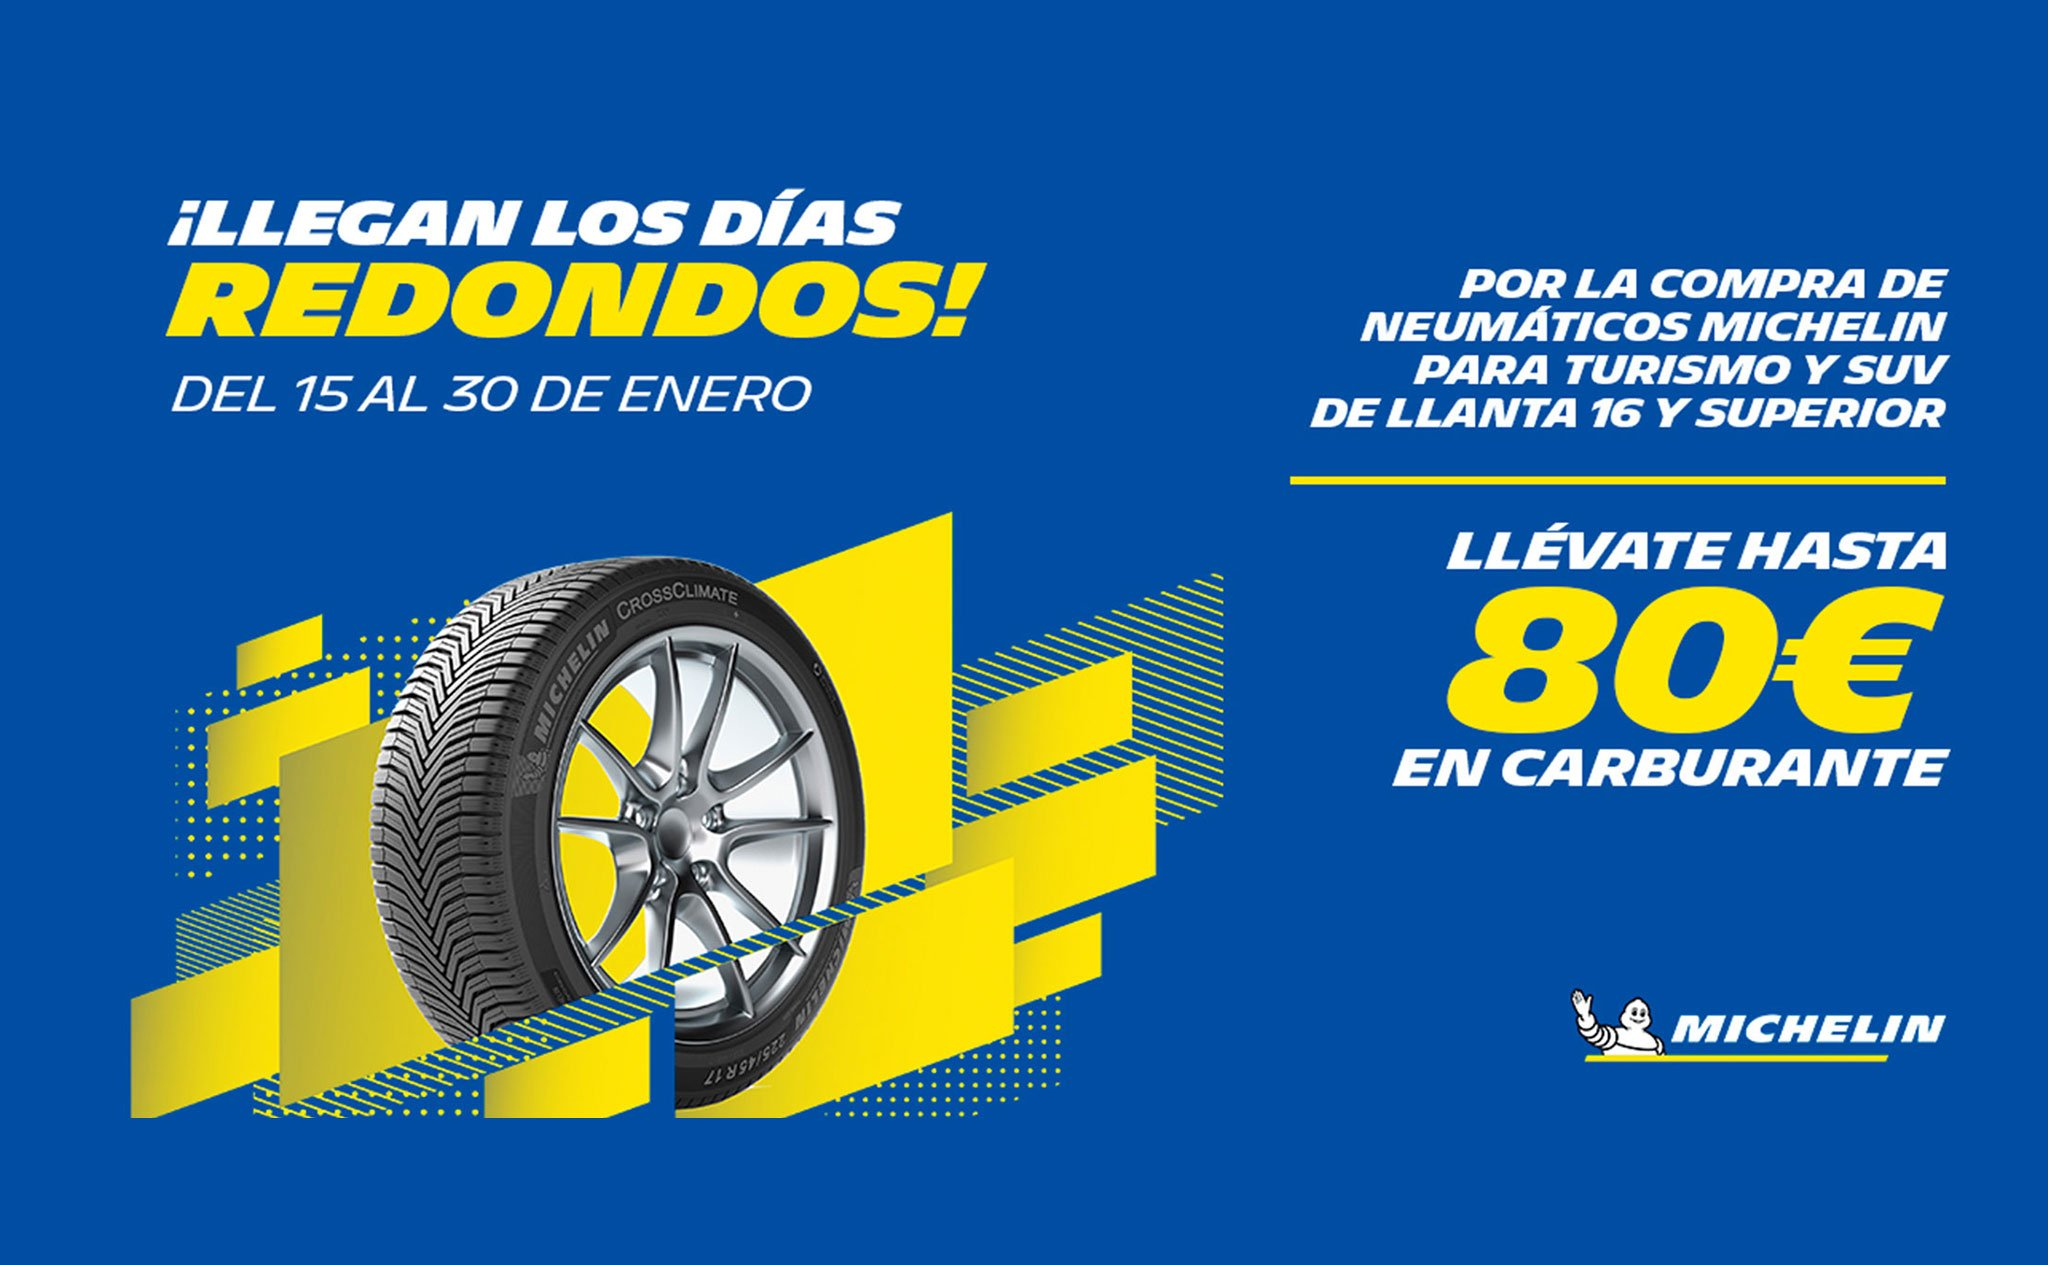 Michelin Promo - Auto Spare Parts Denia